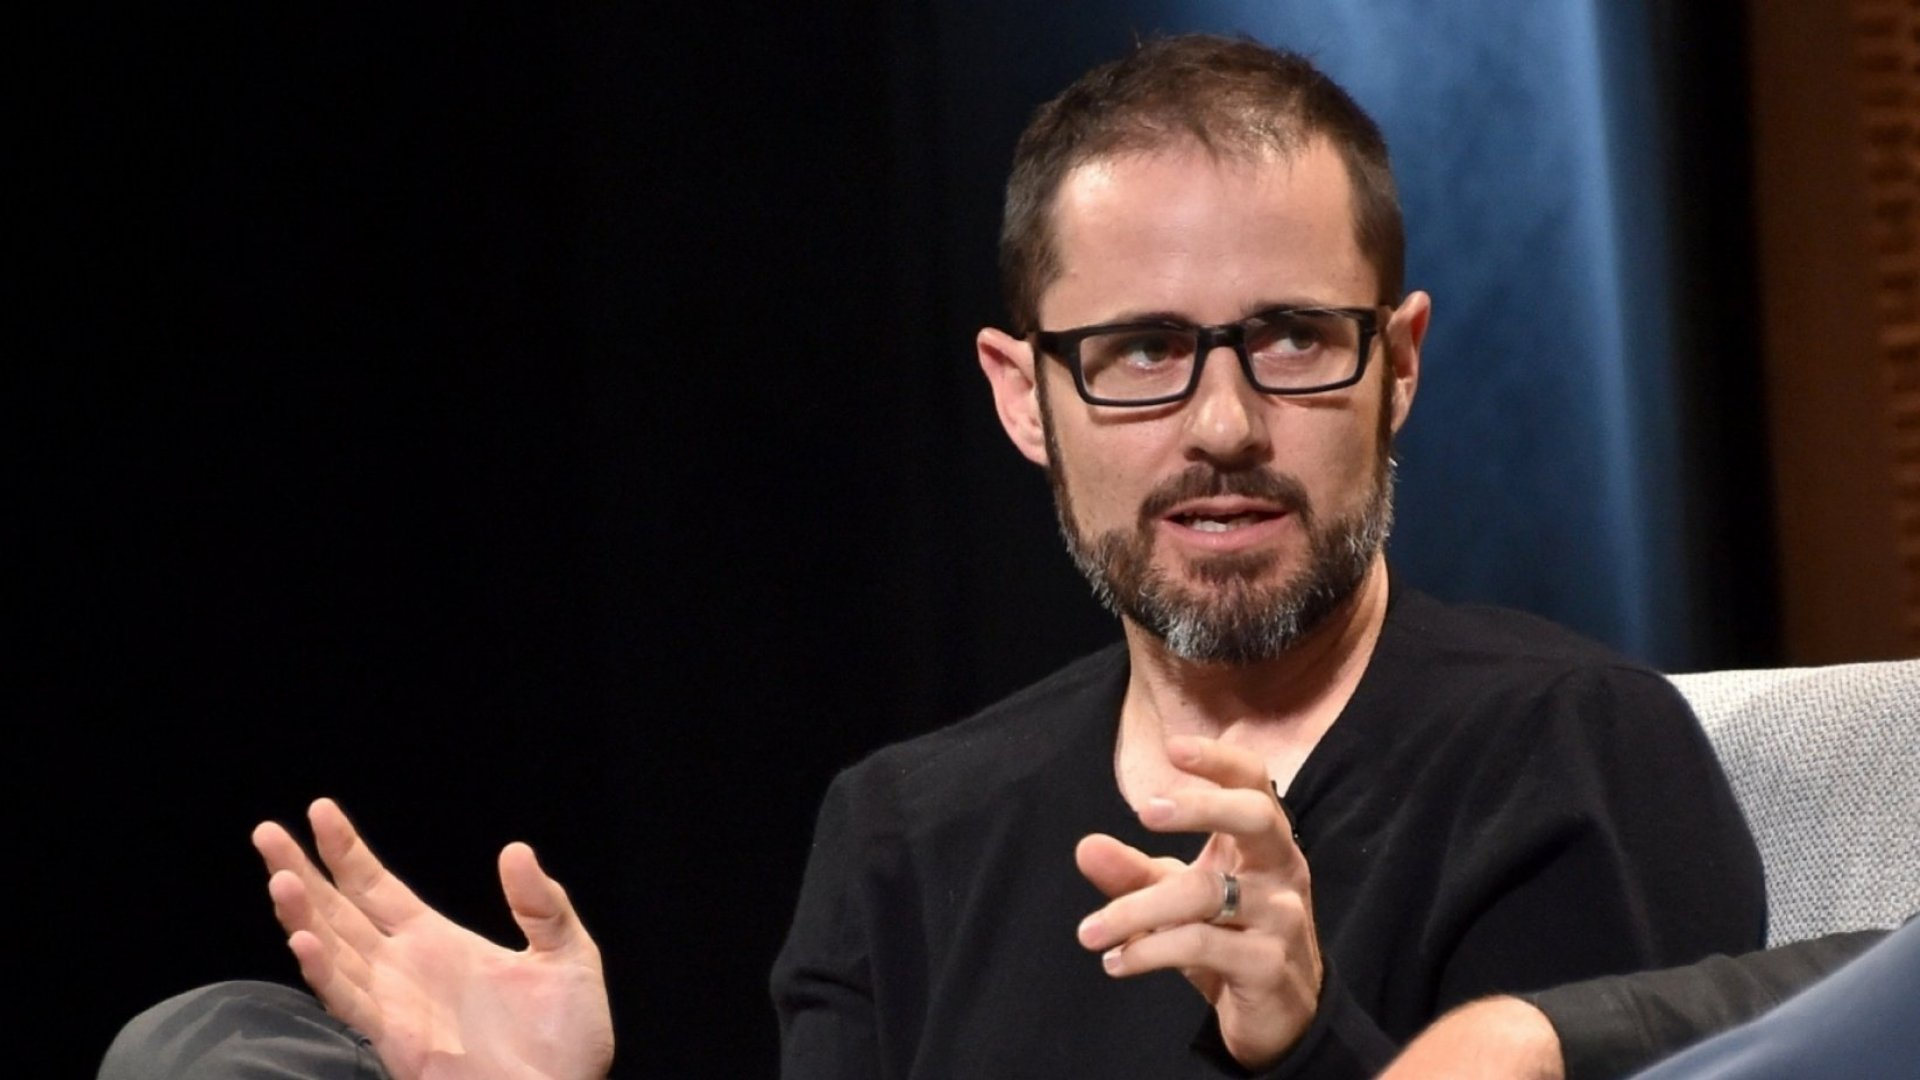 Co-Founder Evan Williams Wants to Sell Up to a Third of His Twitter Shares